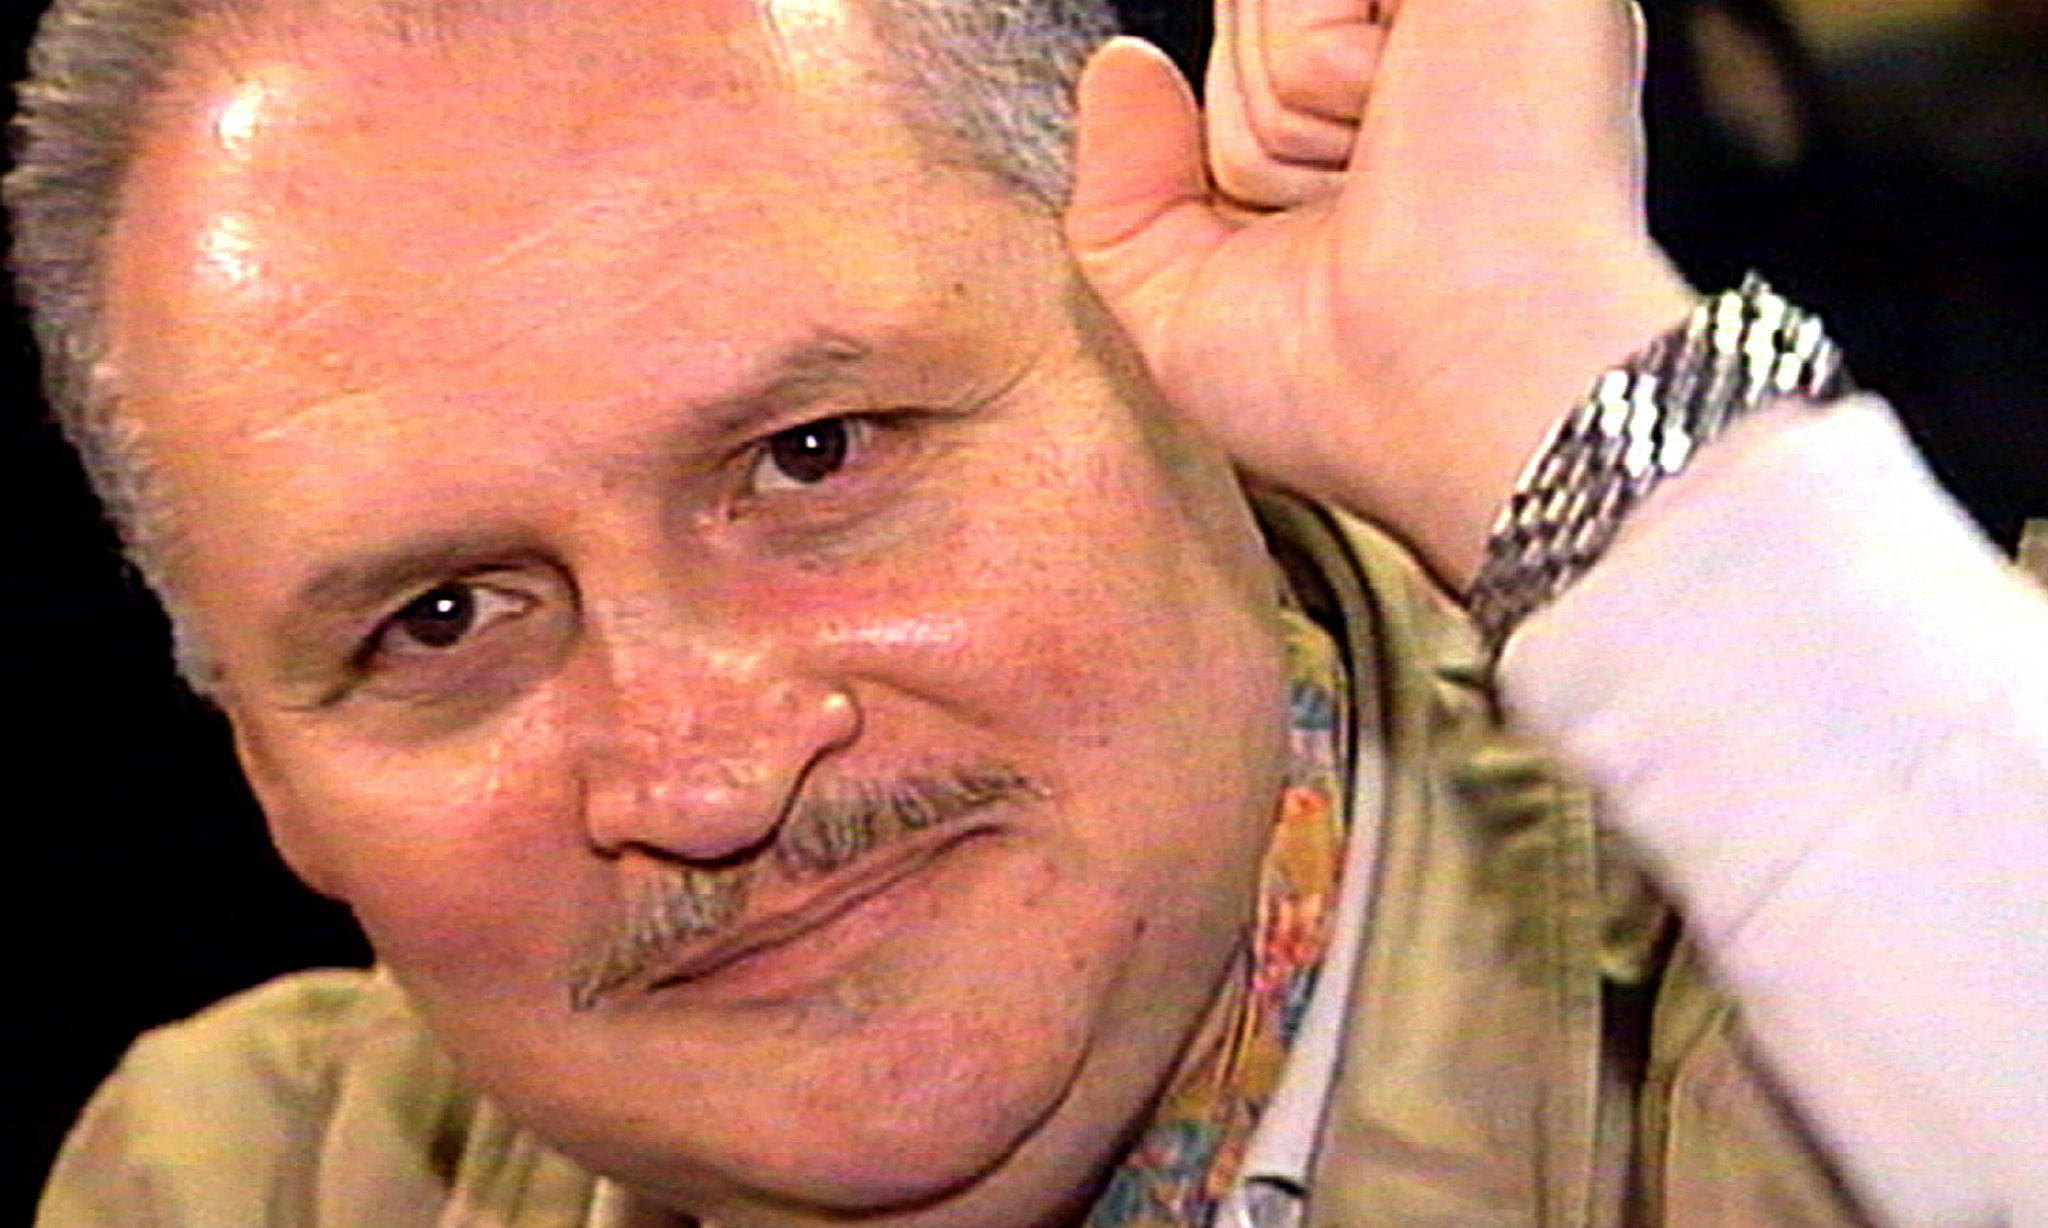 Carlos the Jackal Carlos the Jackal to face fresh trial in France over